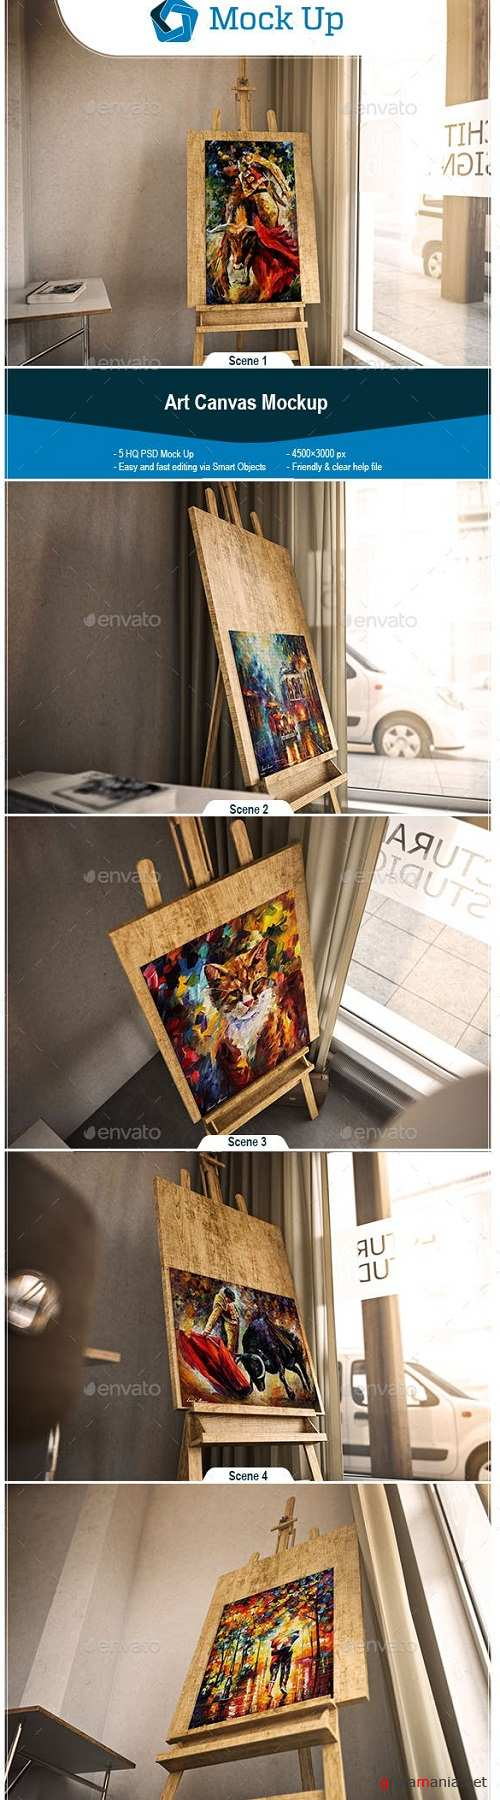 Art Canvas Mockup - 23056722